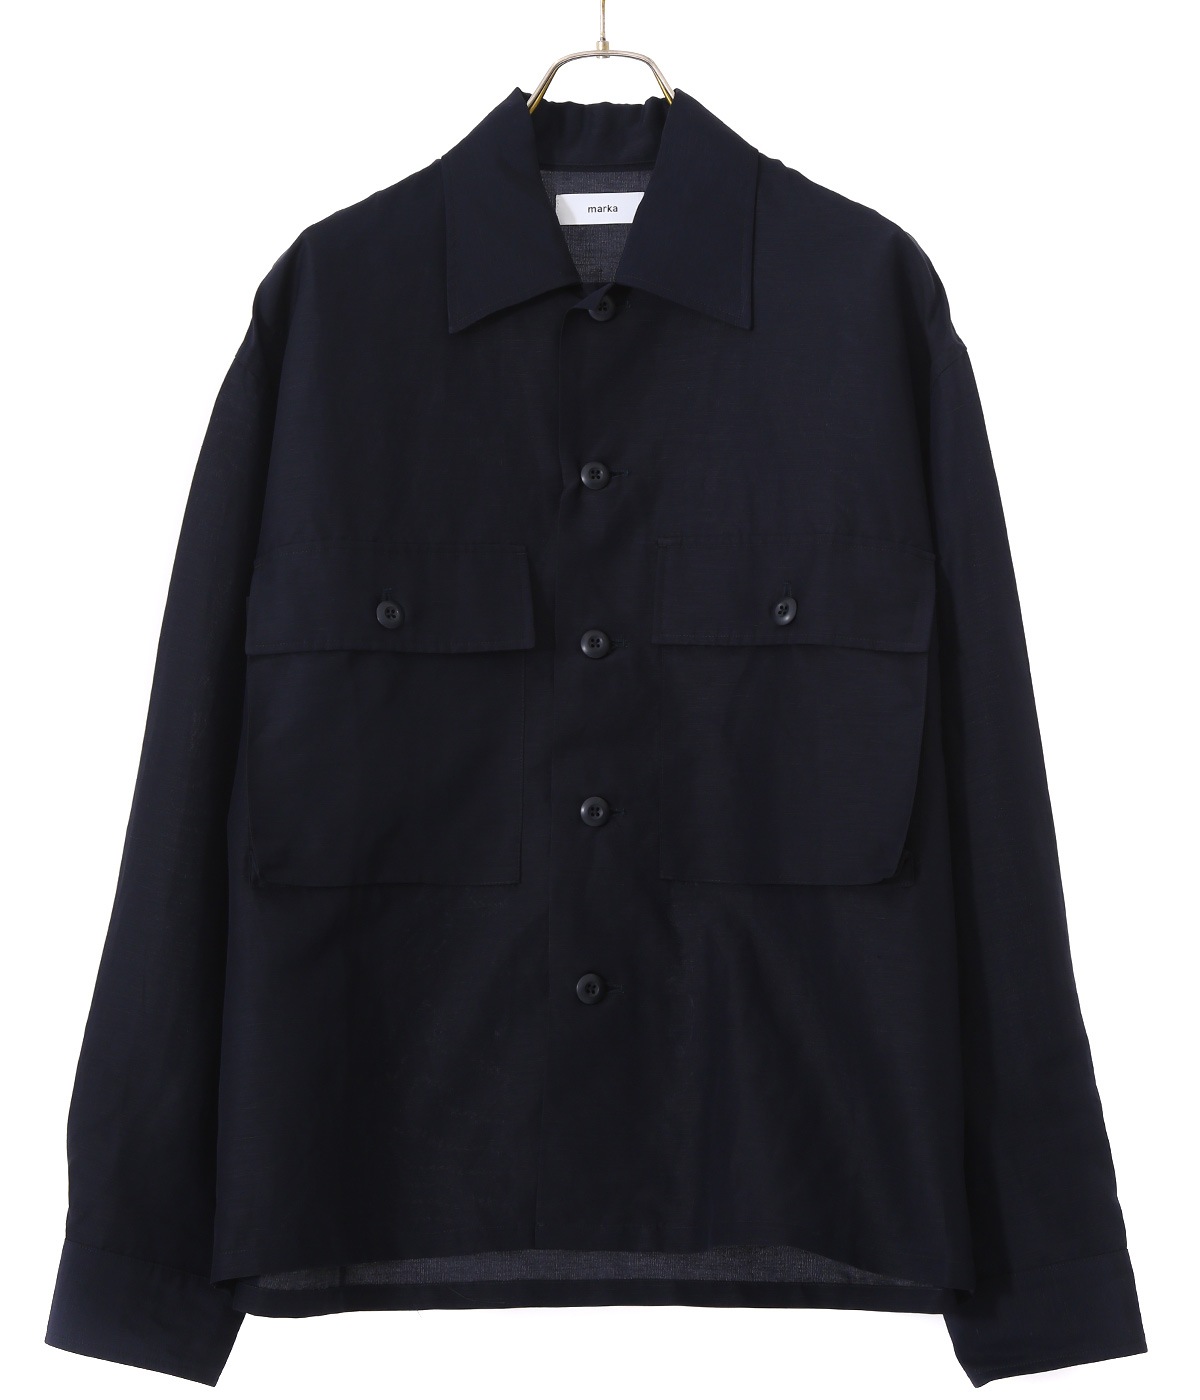 【予約】MILITARY SHIRT - cupro linen cotton cloth -